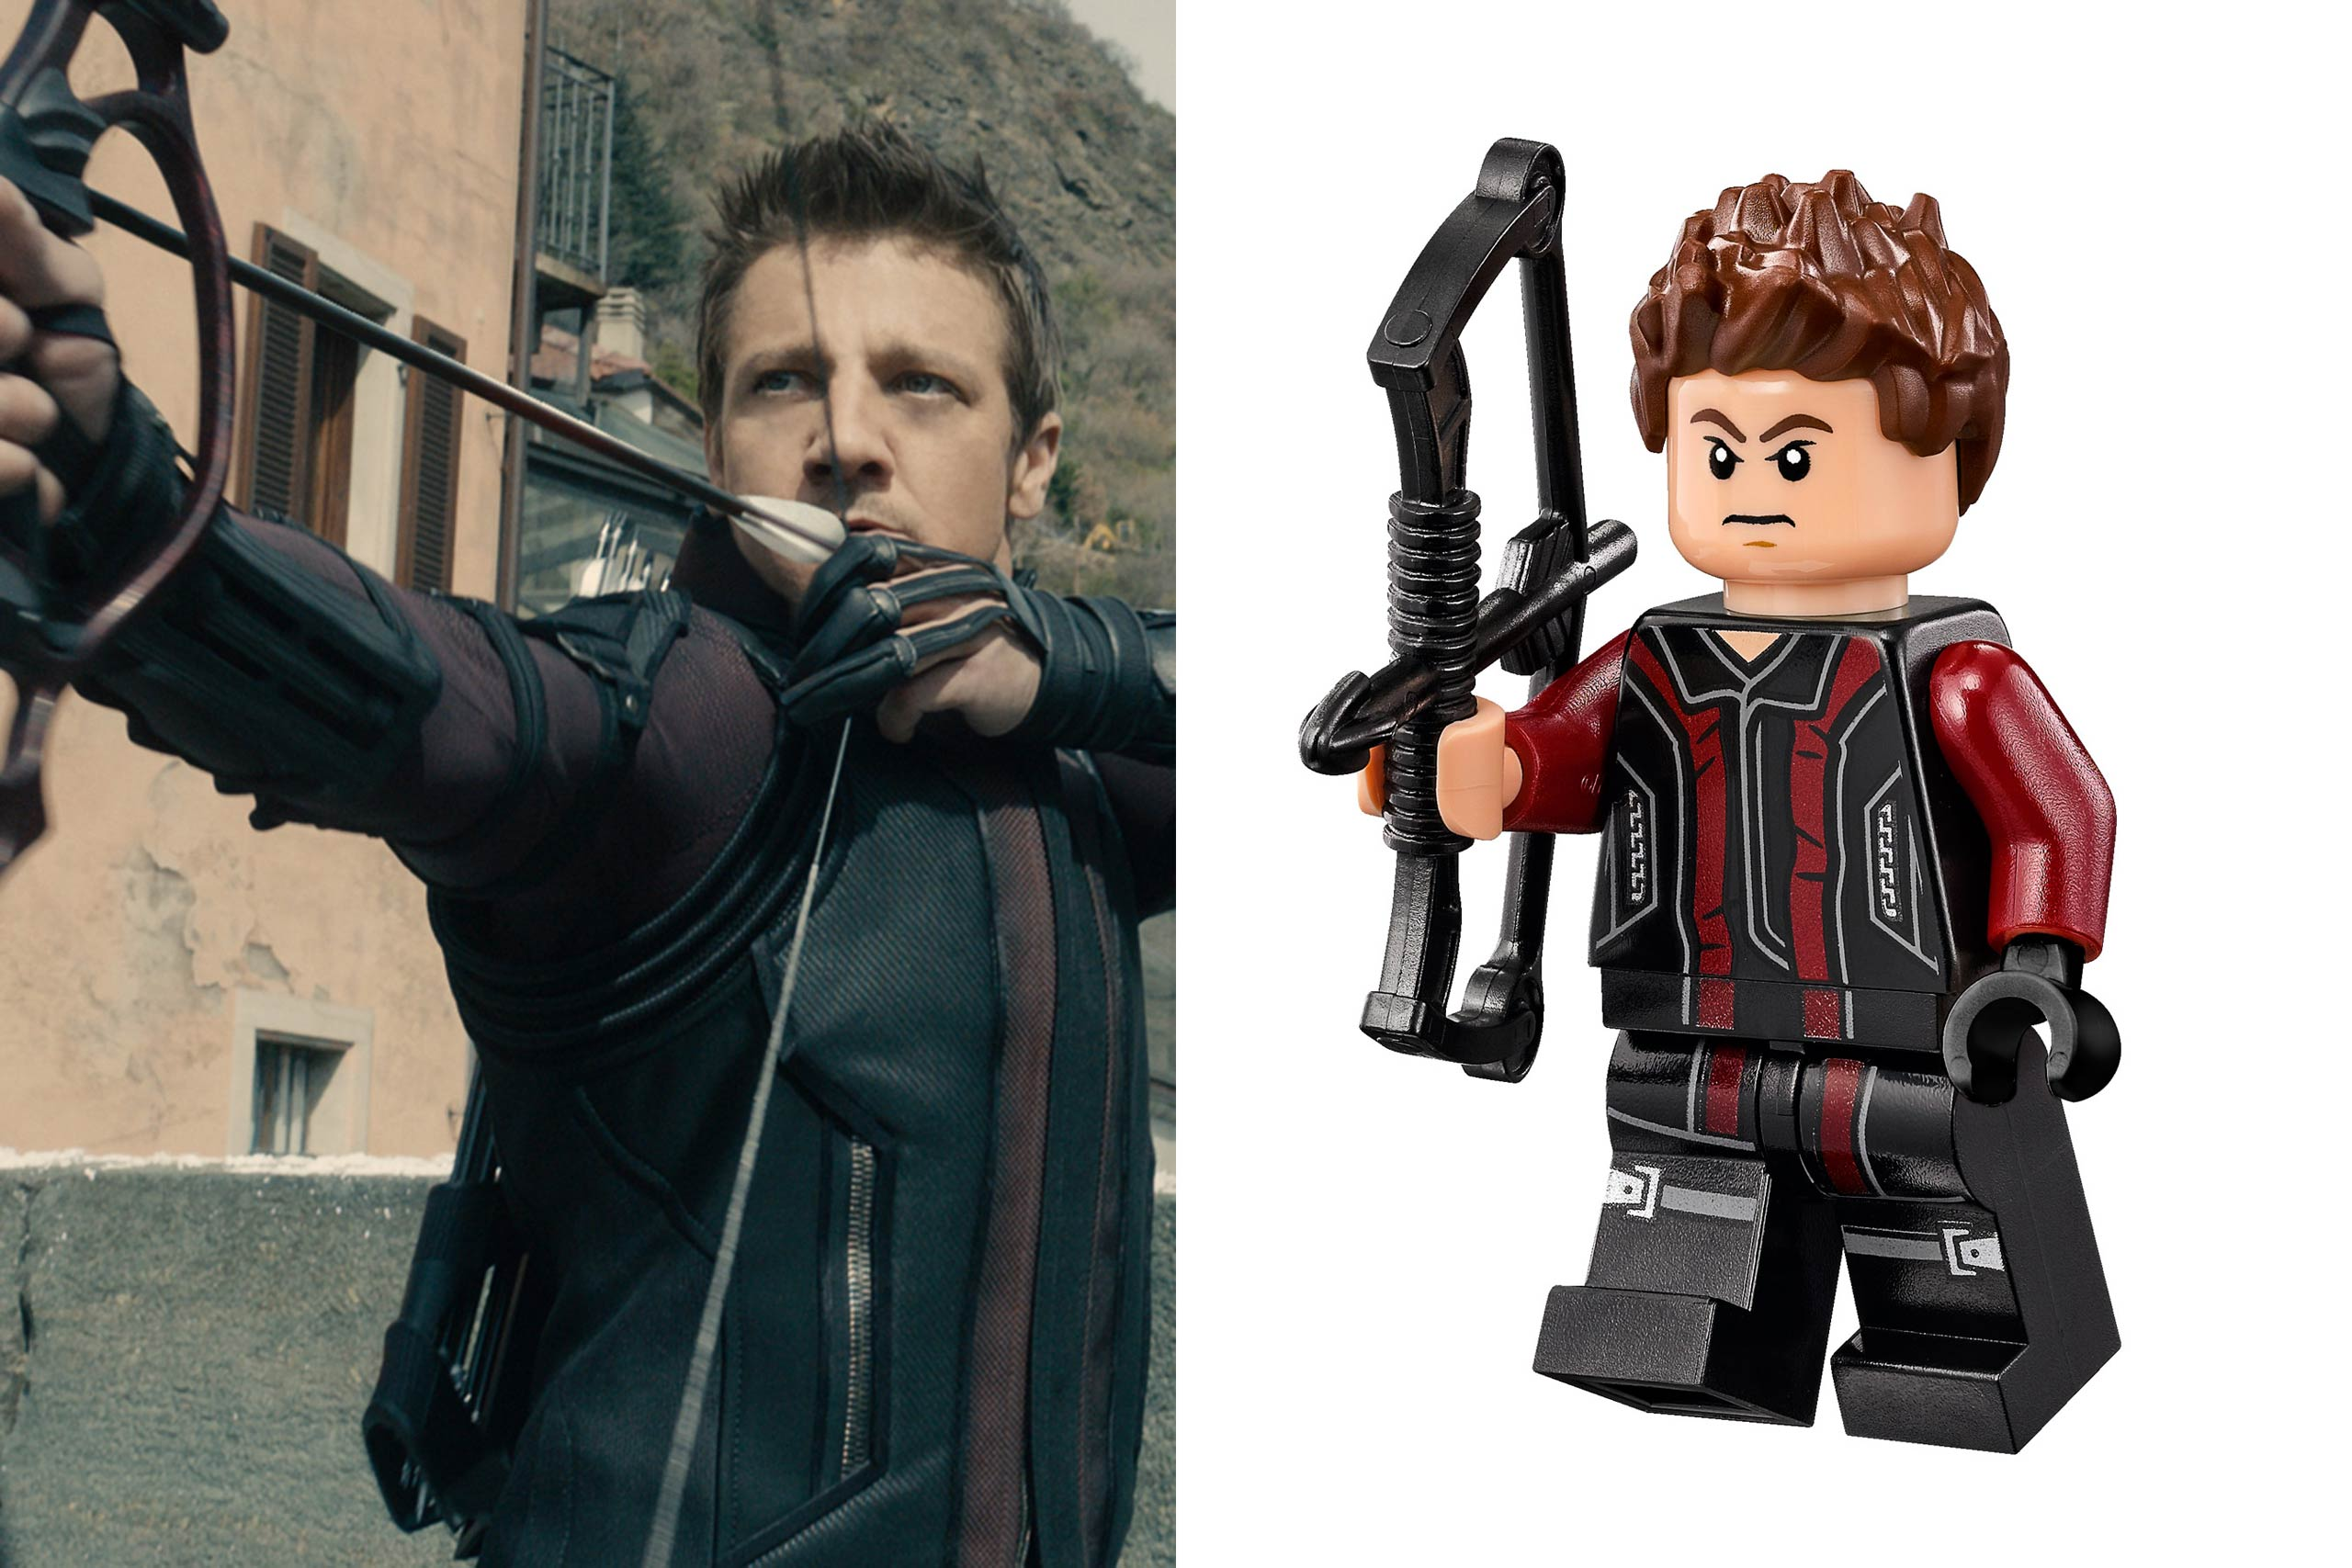 <strong>Jeremy Renner: Hawkeye</strong>